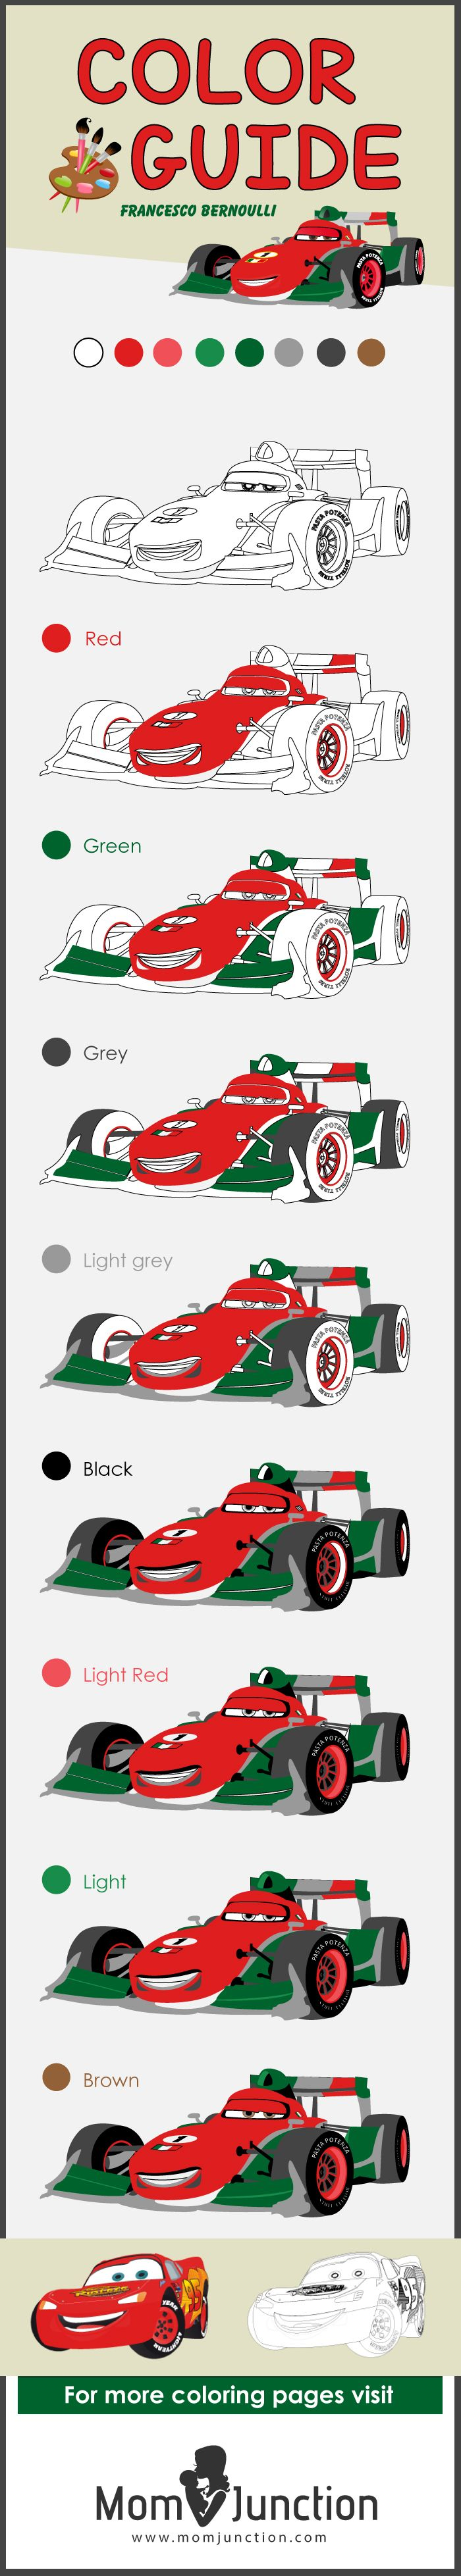 Coloring cars 2 online - Top 25 Free Printable Colorful Cars Coloring Pages Online